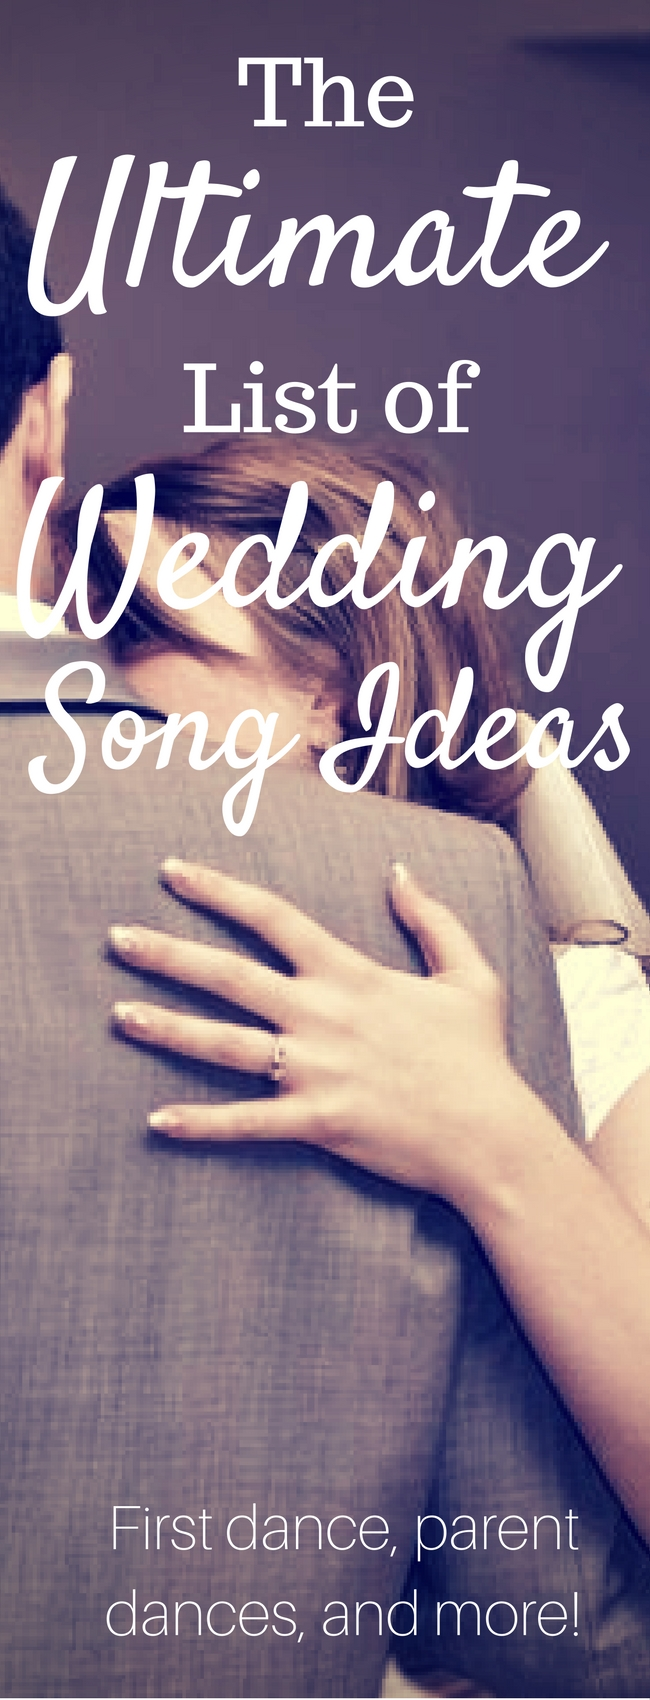 The Ultimate List of Wedding Song Ideas